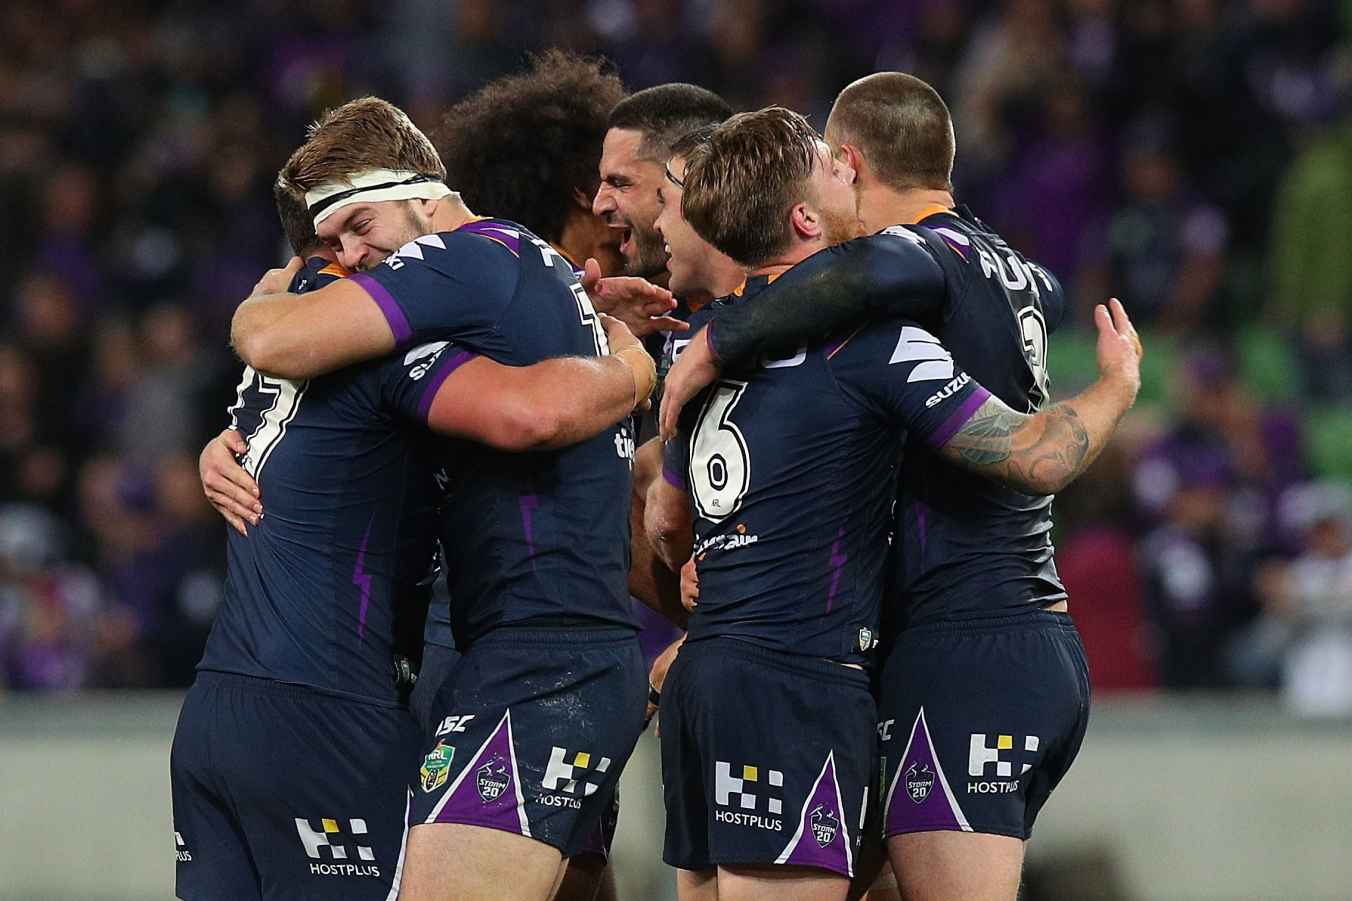 The Storm players celebrate victory in the NRL Qualifying Final match between the Melbourne Storm and the South Sydney Rabbitohs at AAMI Park on September 7, 2018 in Melbourne, Australia.